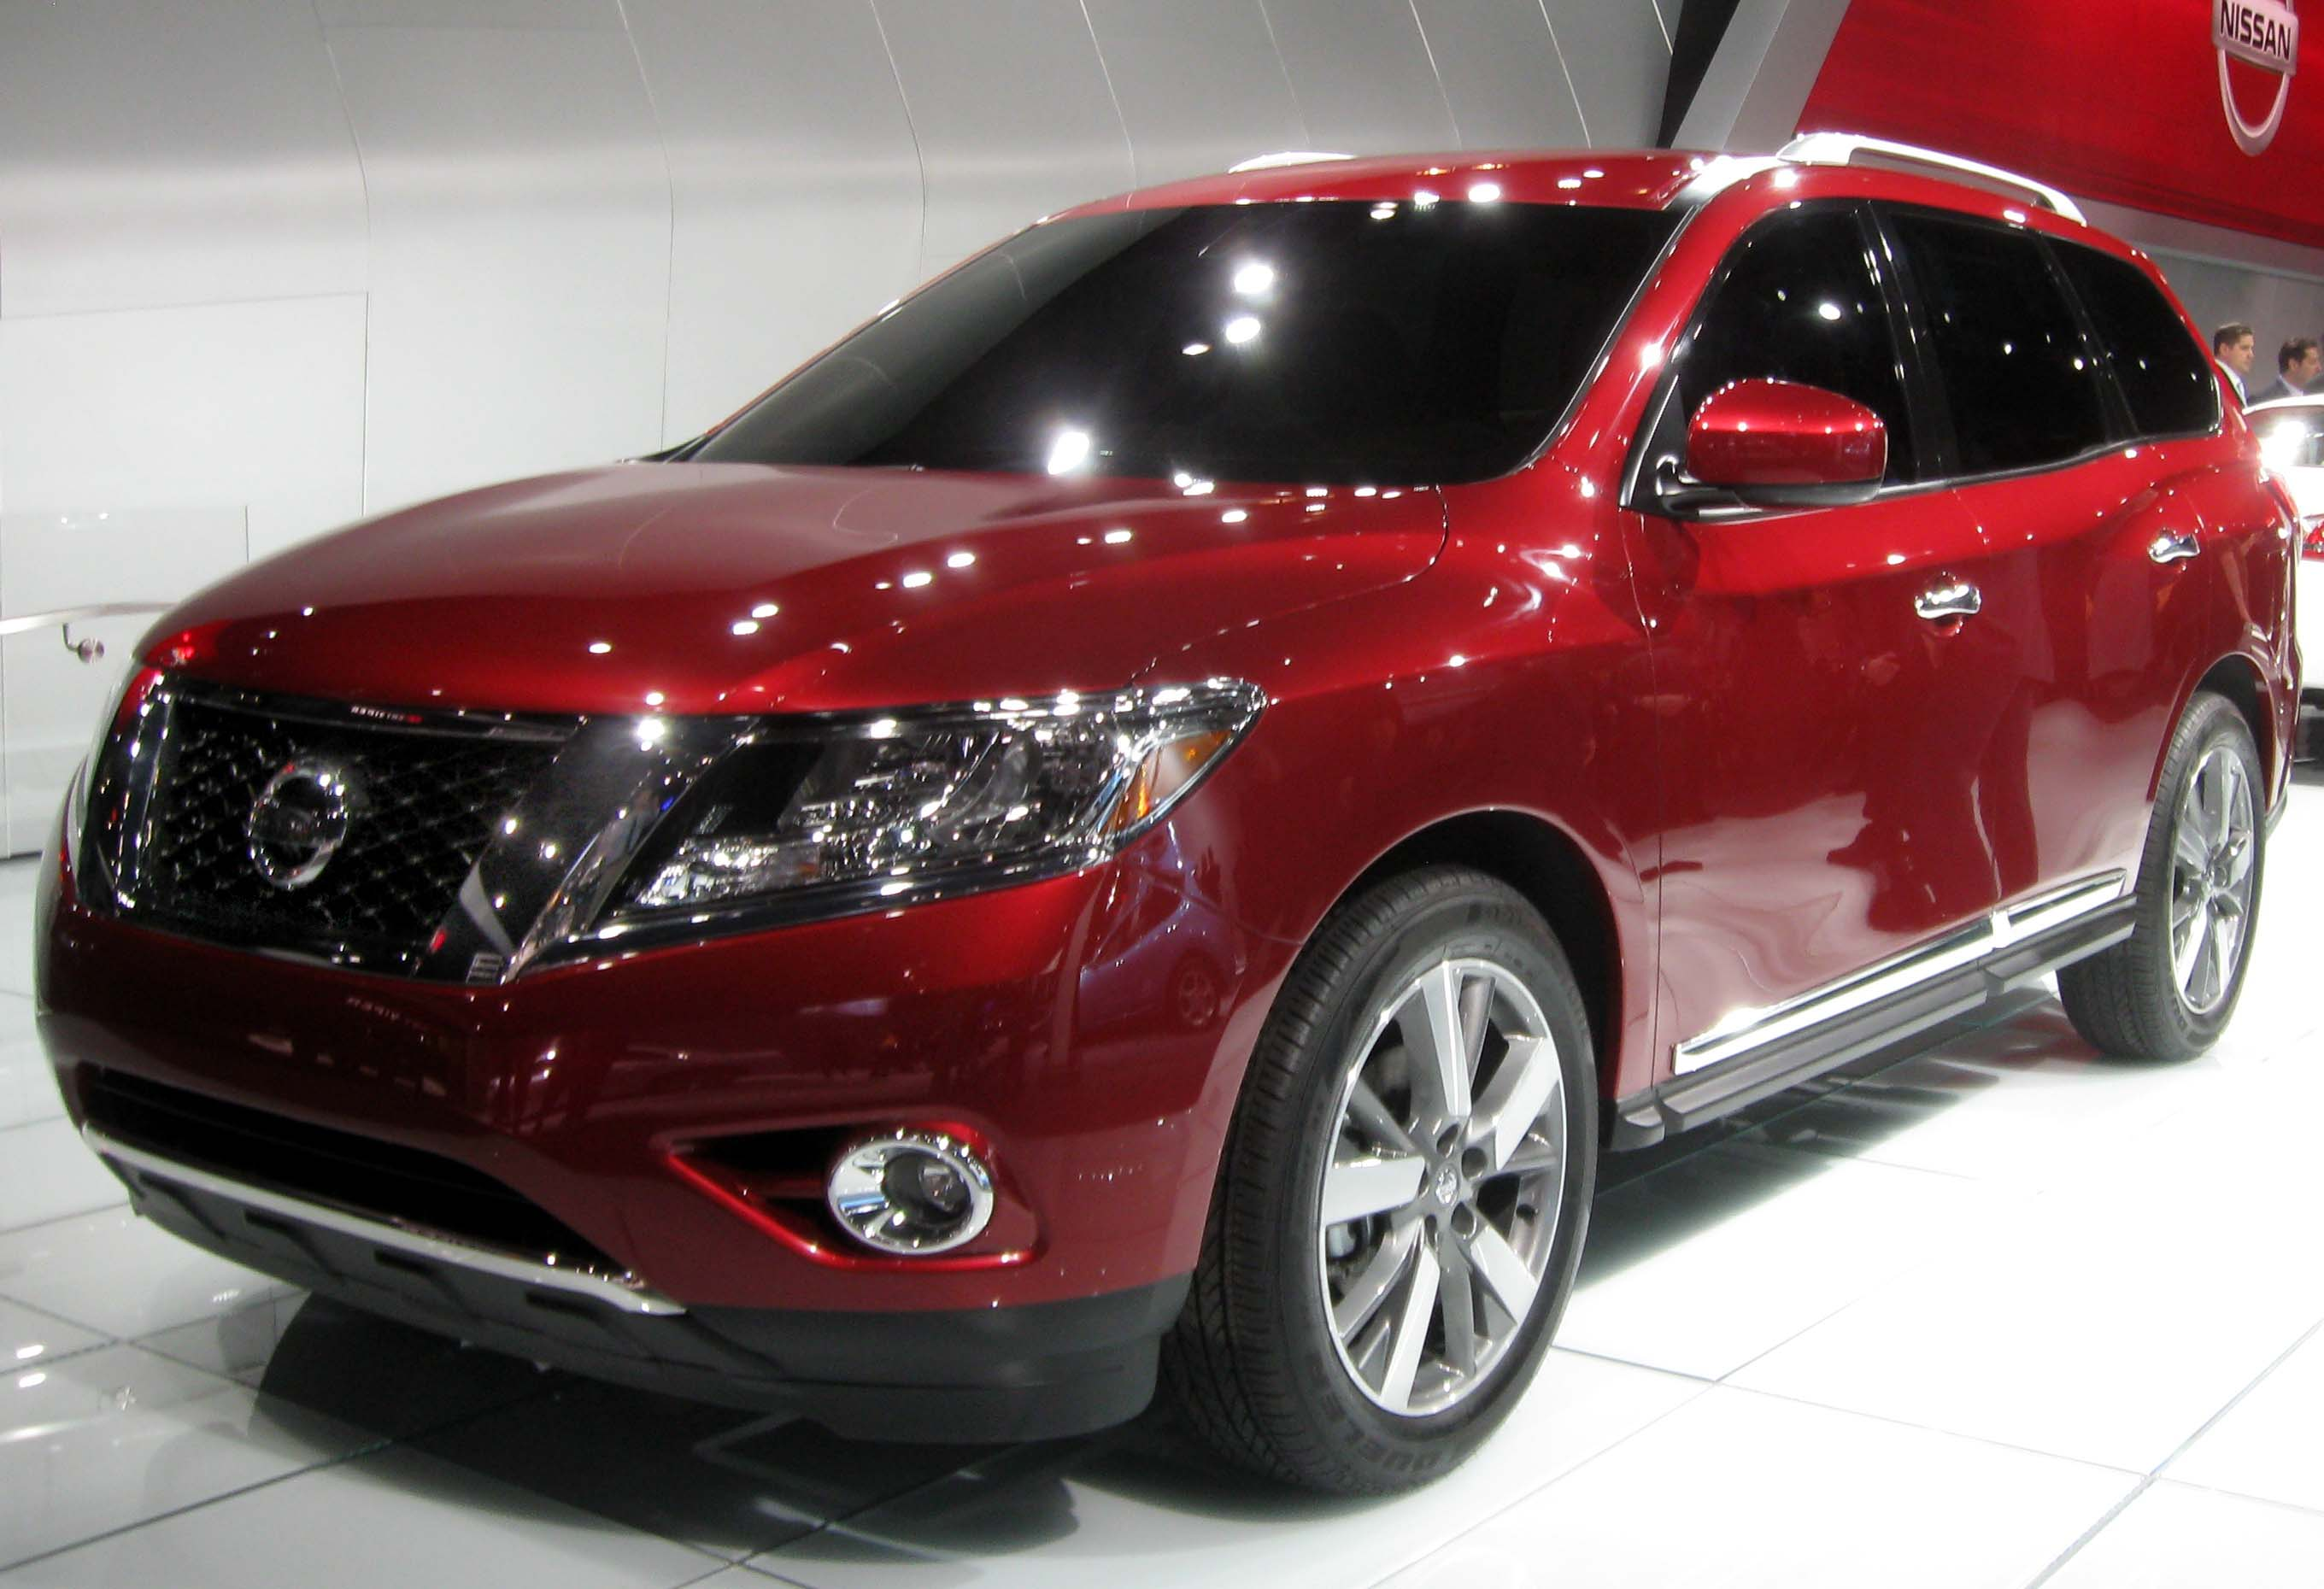 File:2013 Nissan Pathfinder Concept    2012 NYIAS.JPG